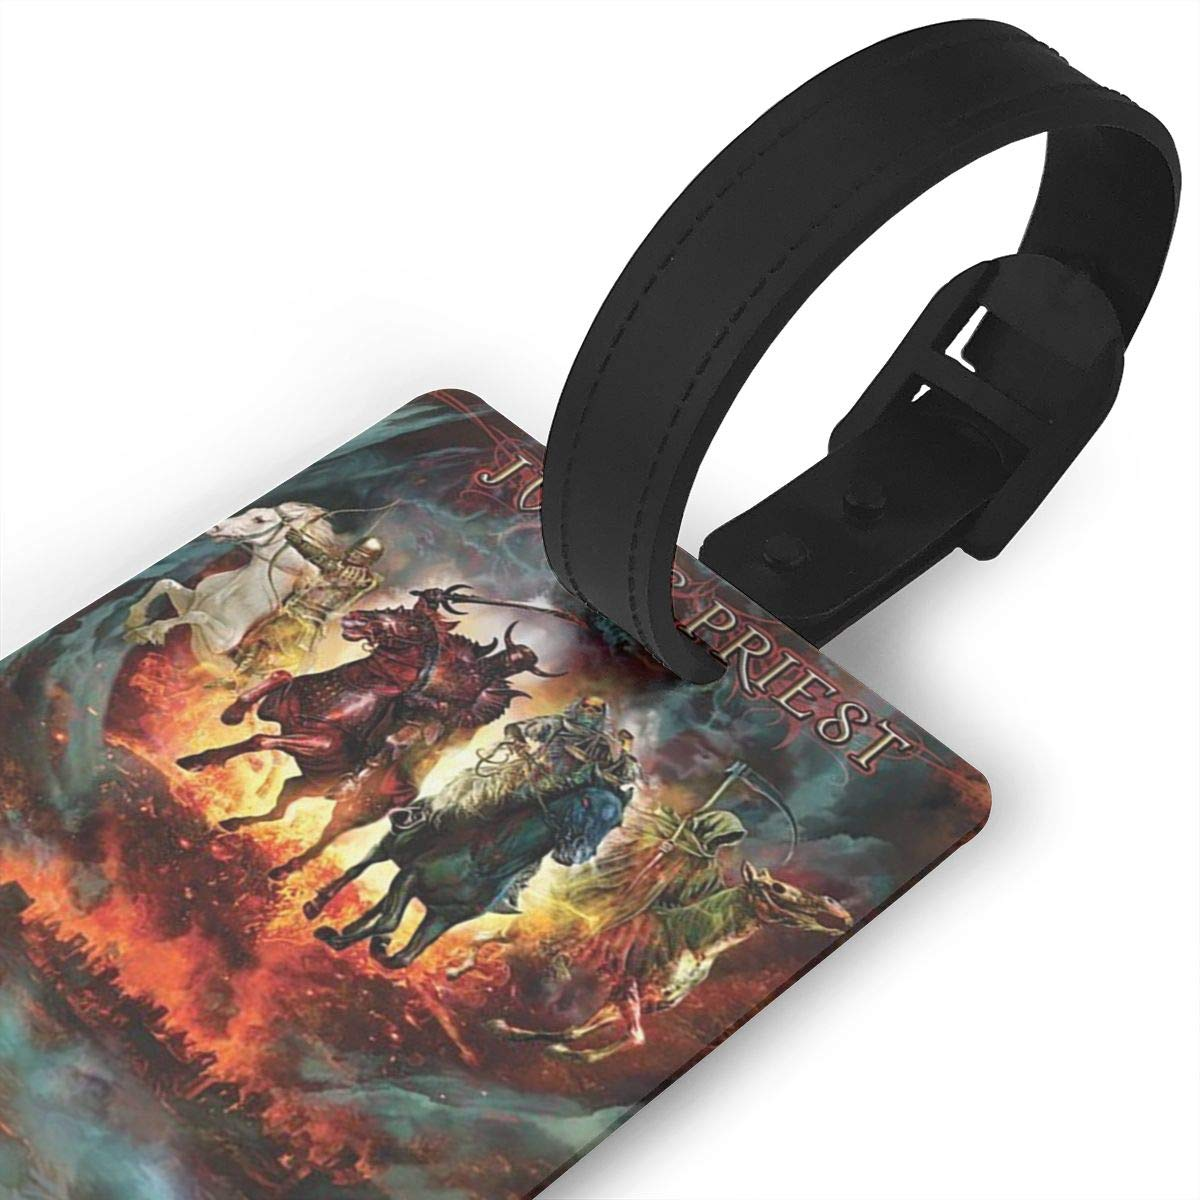 Hushuxiapp Judas Priest Complete Printed Design PVC Luggage Tag Travel Suitcase ID Labels Accessories Leather Wristband